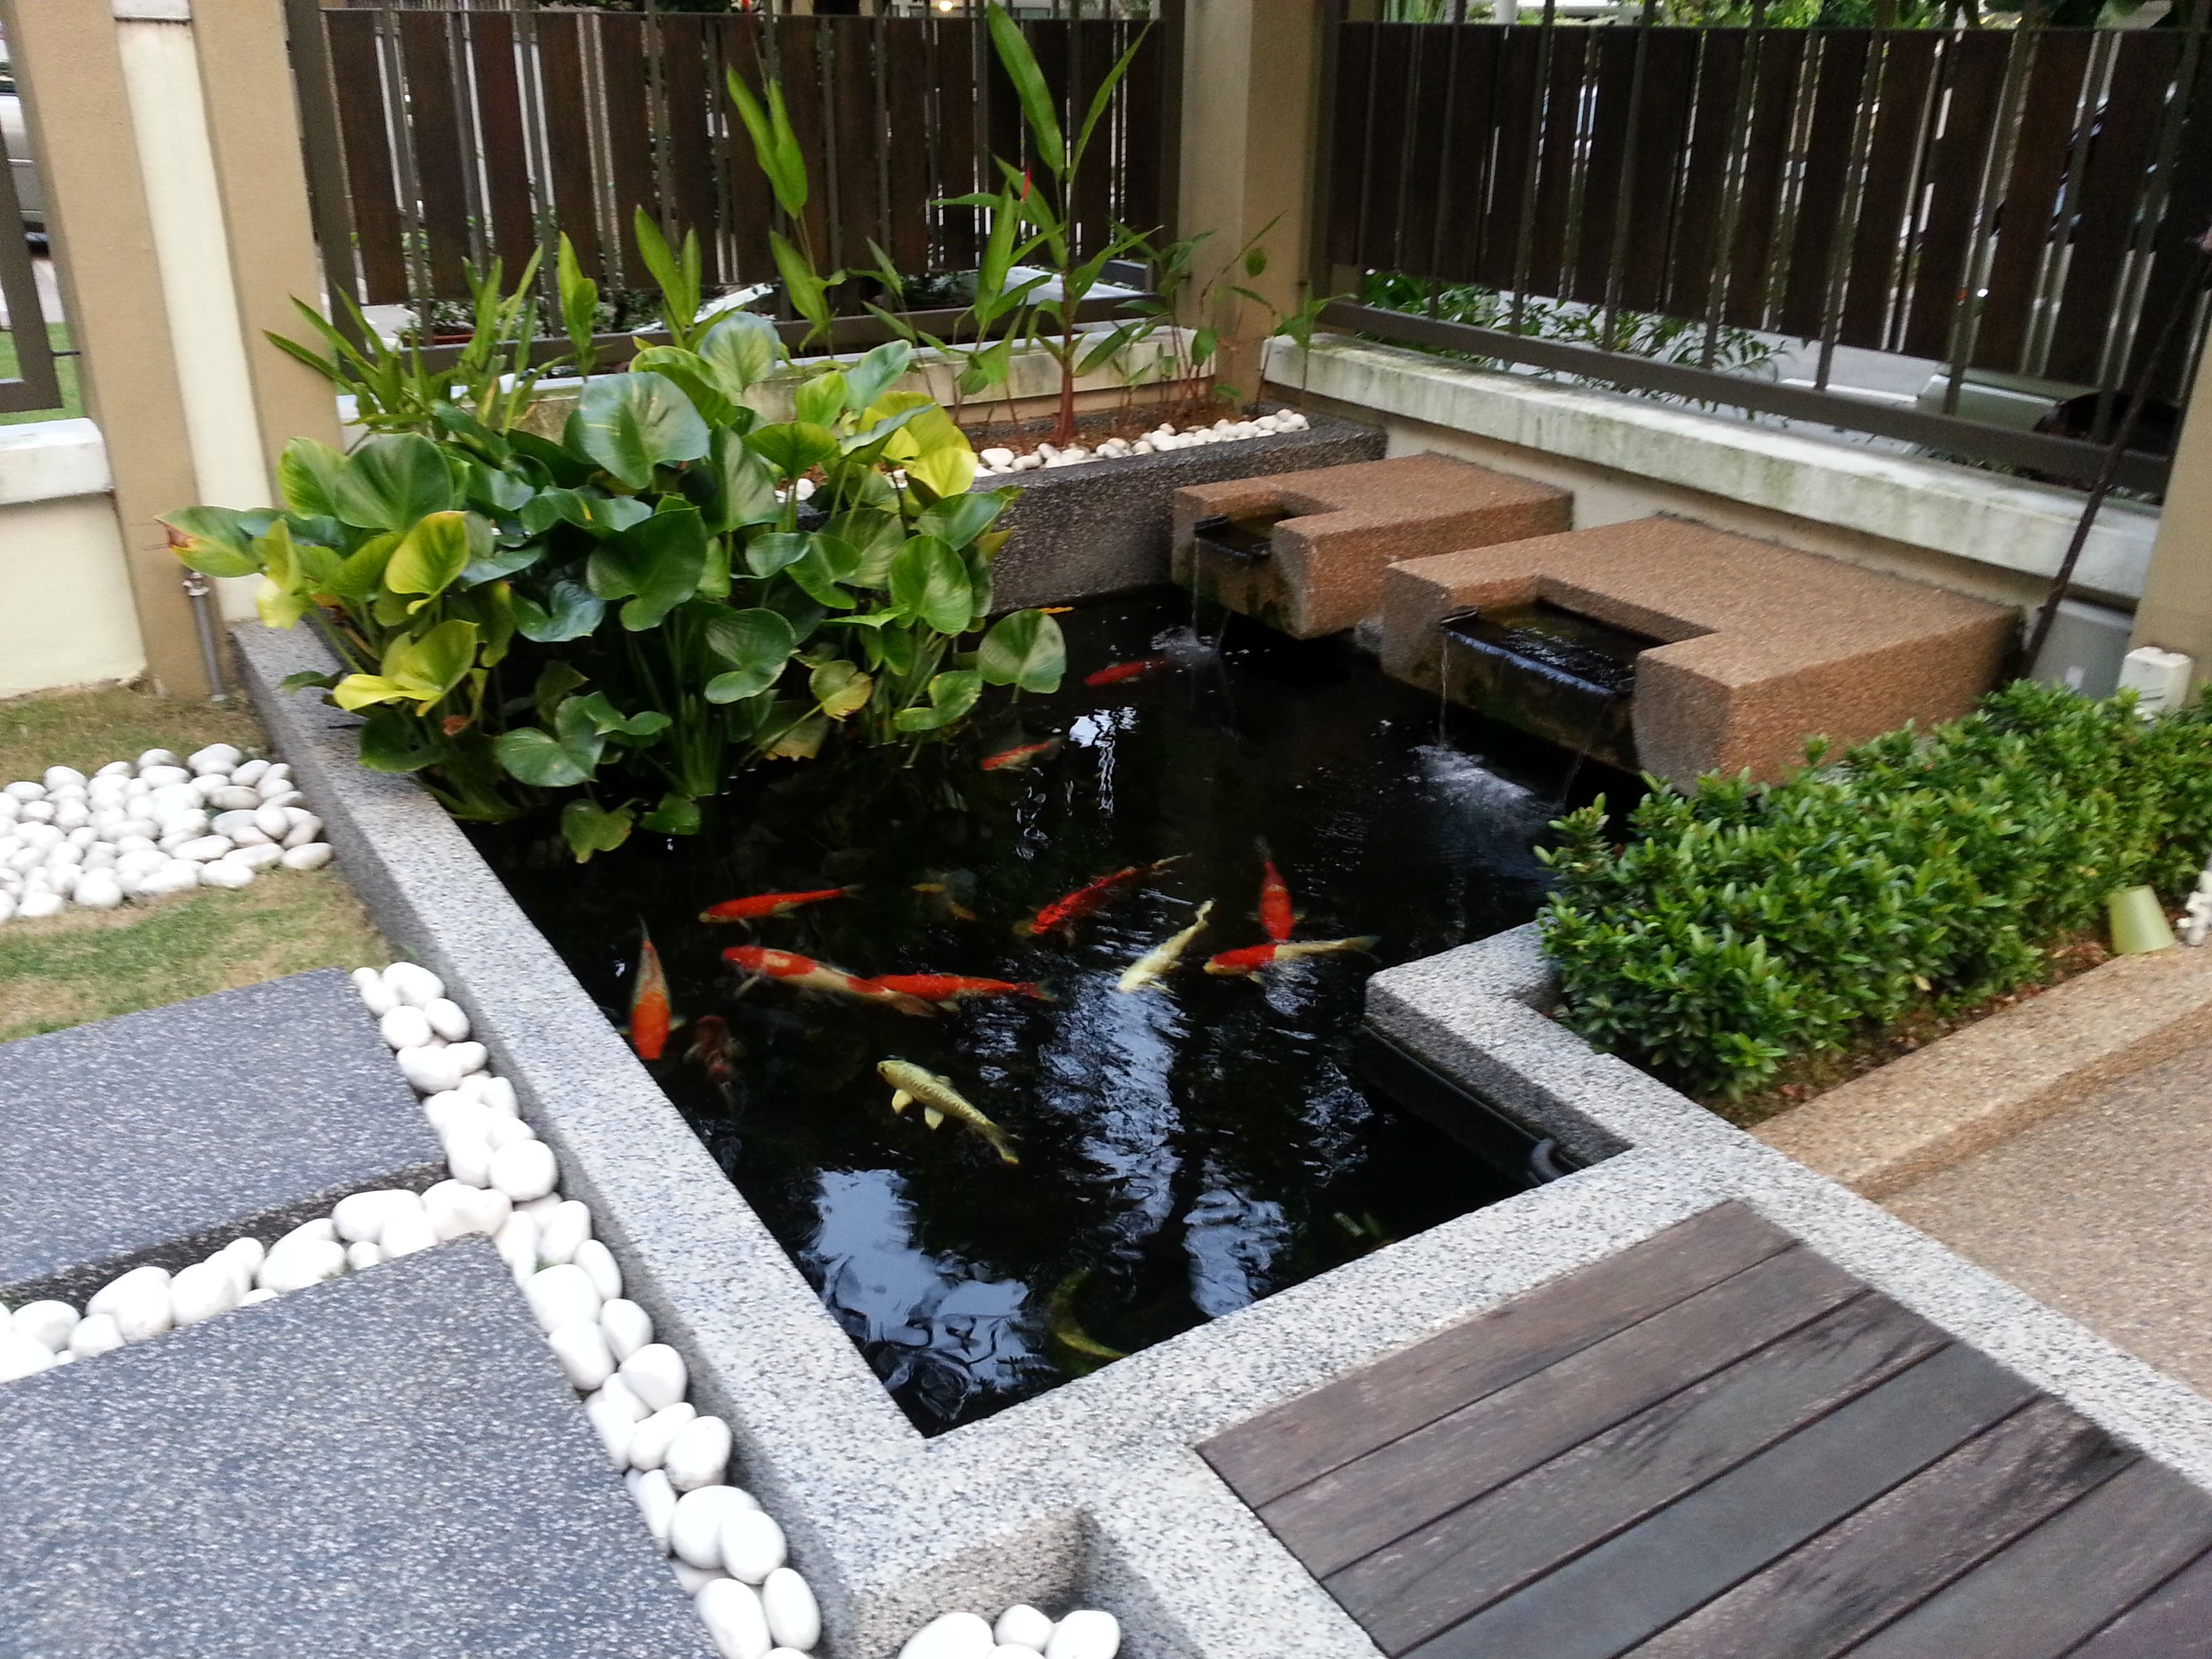 Koi Pond Ponds Backyard Koi Pond Design Koi Pond Backyard